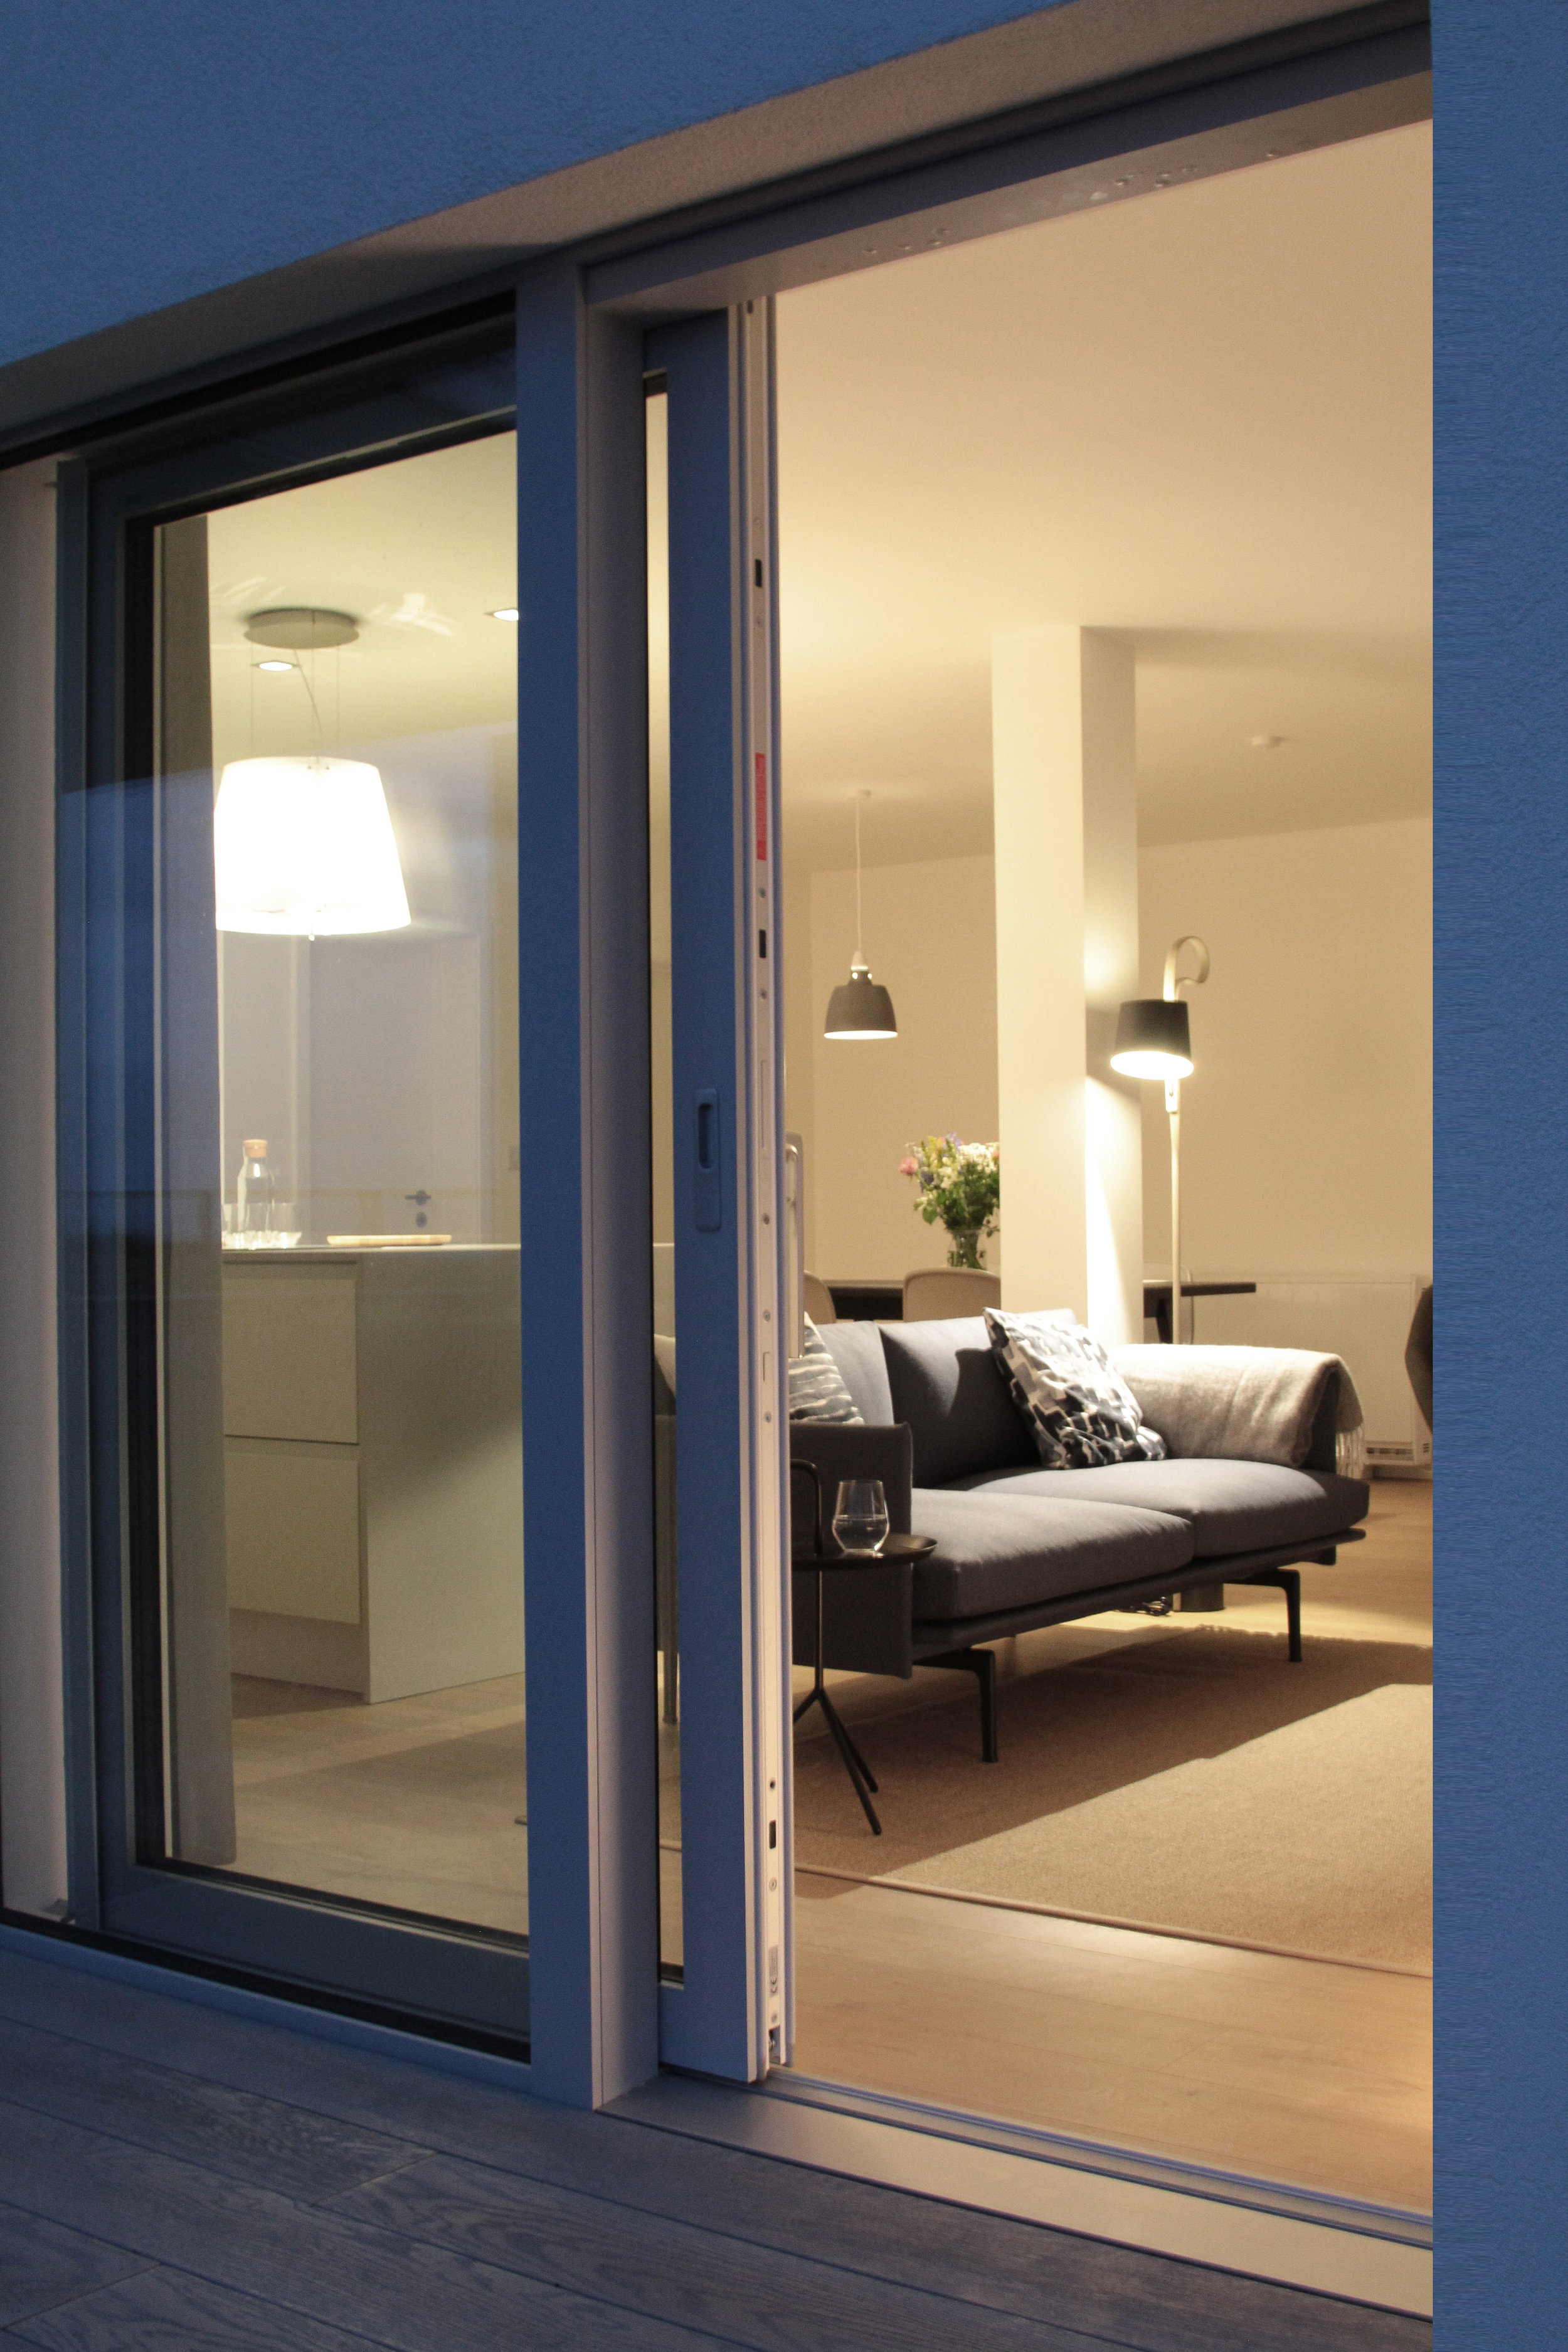 BreakPoint 'Marram' img21 - Evening View into living area from sea-side garden terrace.jpg